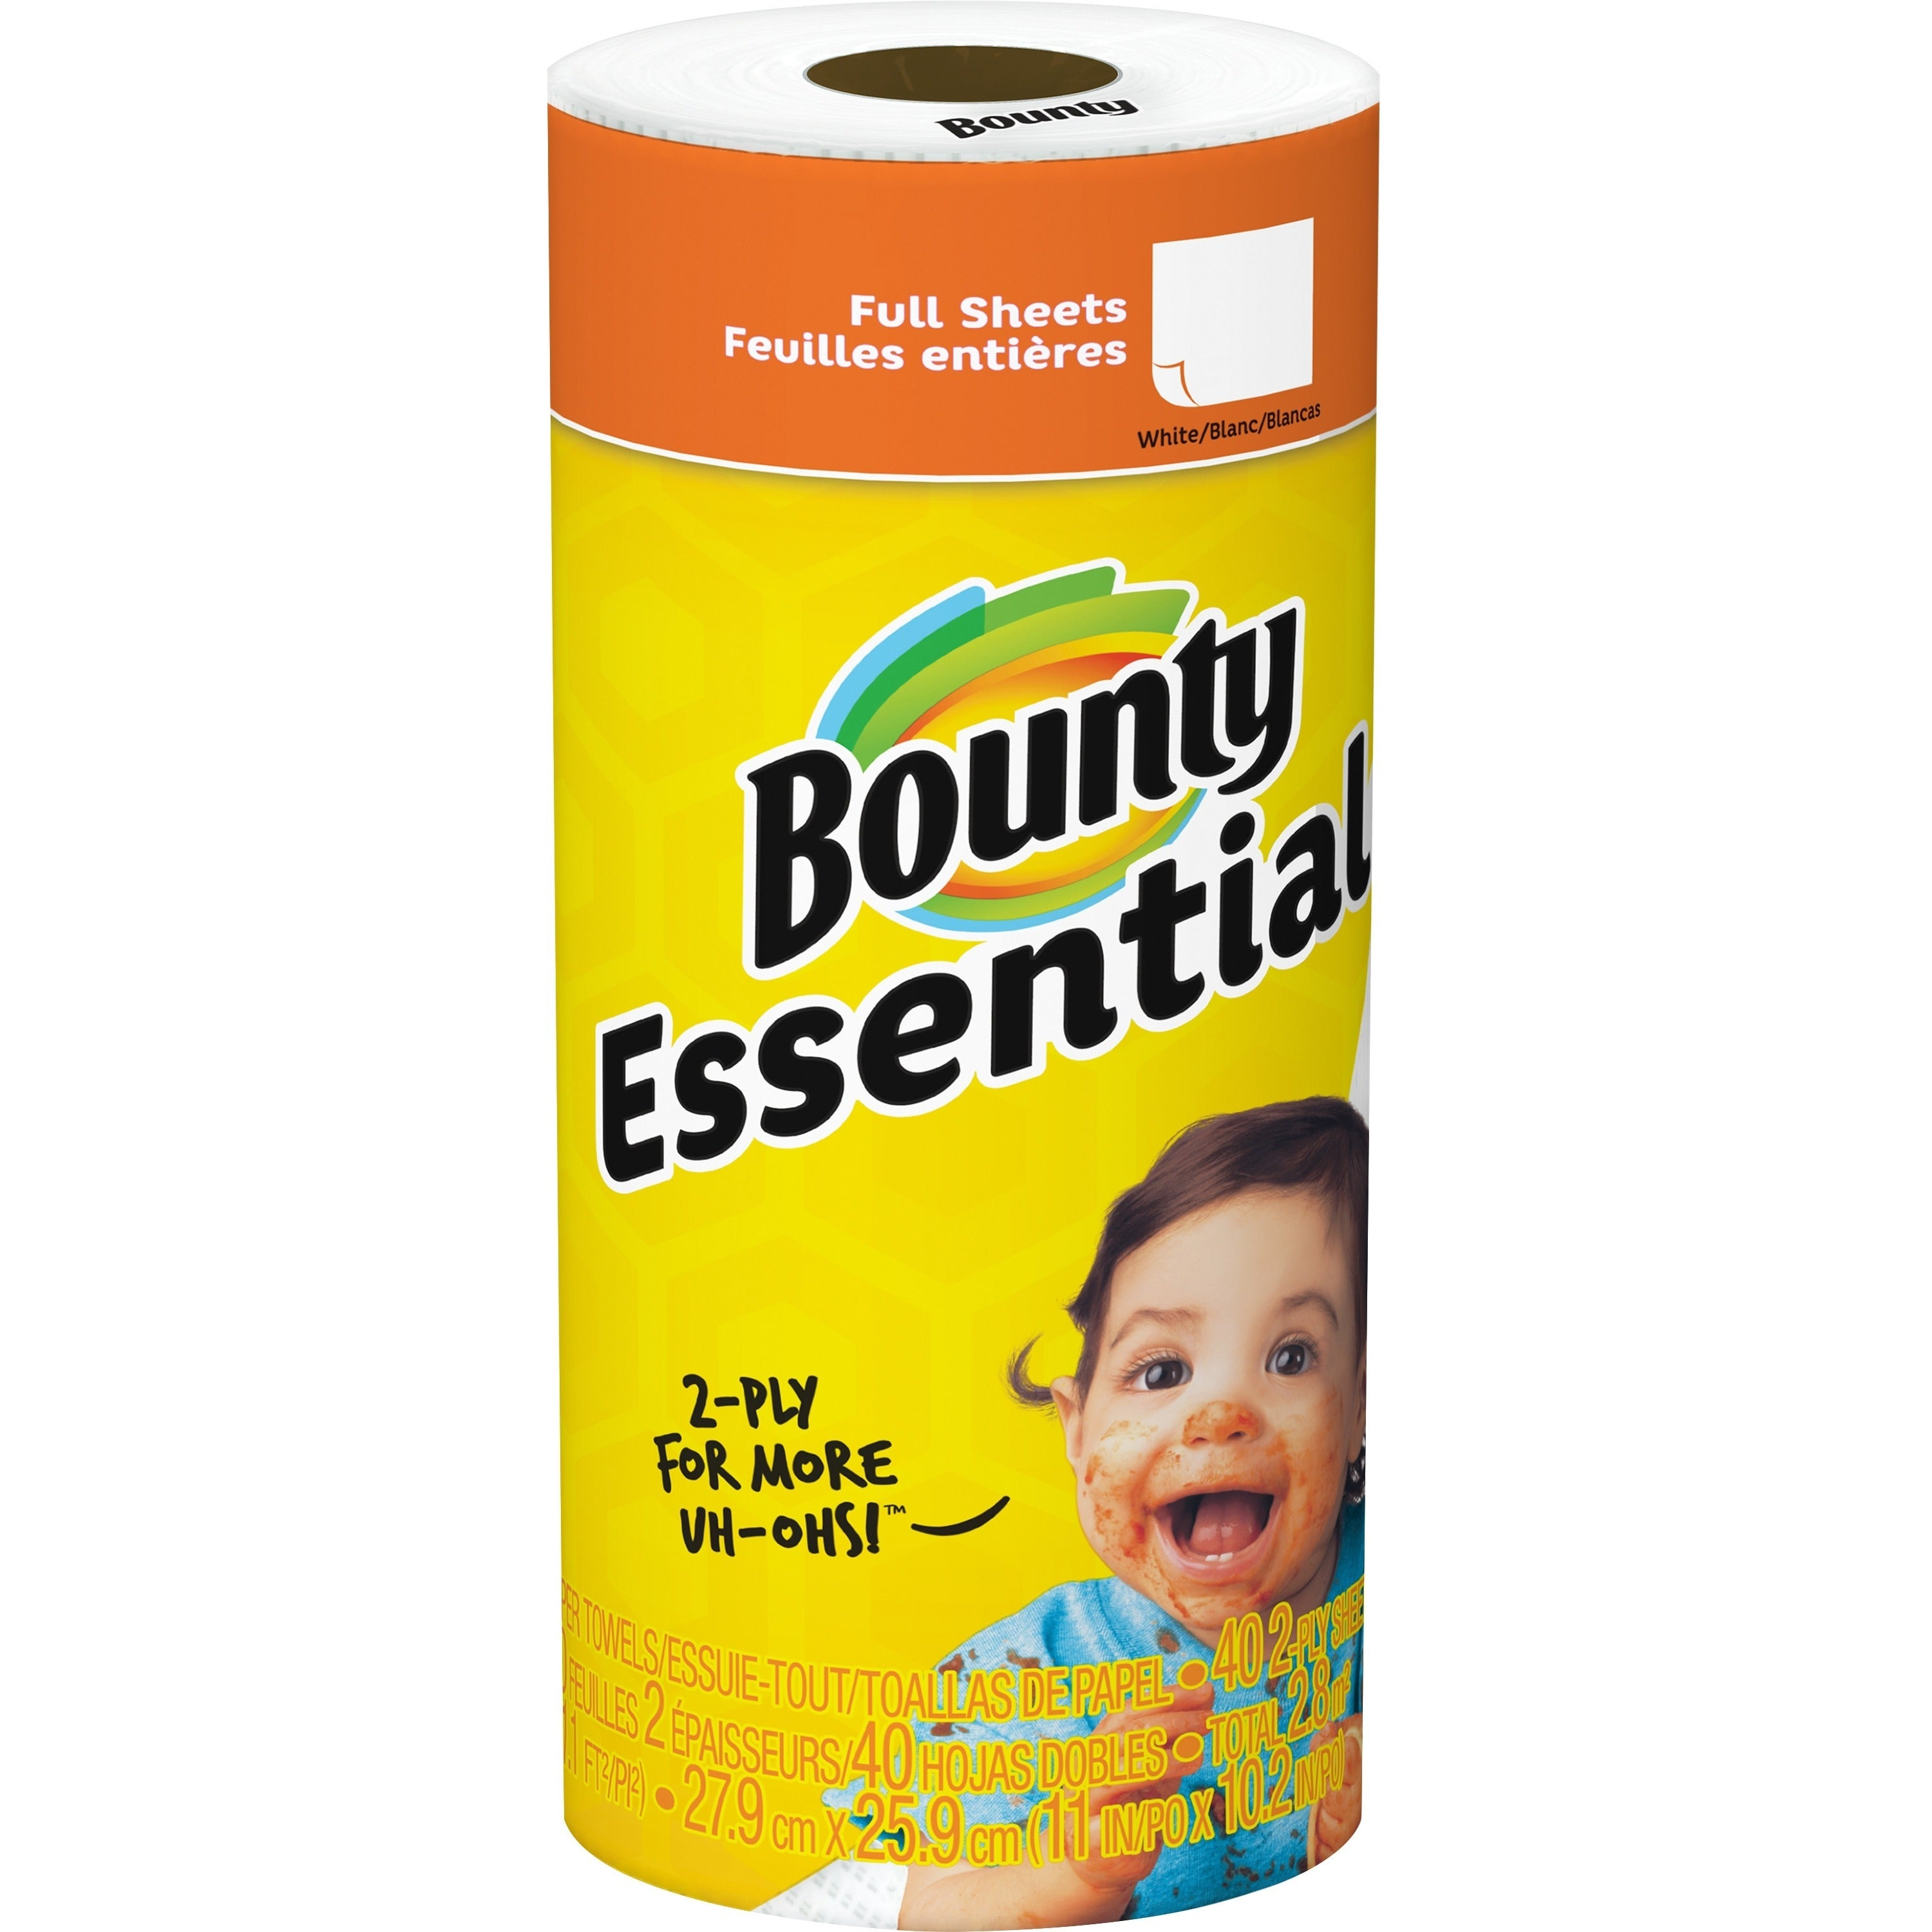 Bounty Essentials Paper Roll Towels